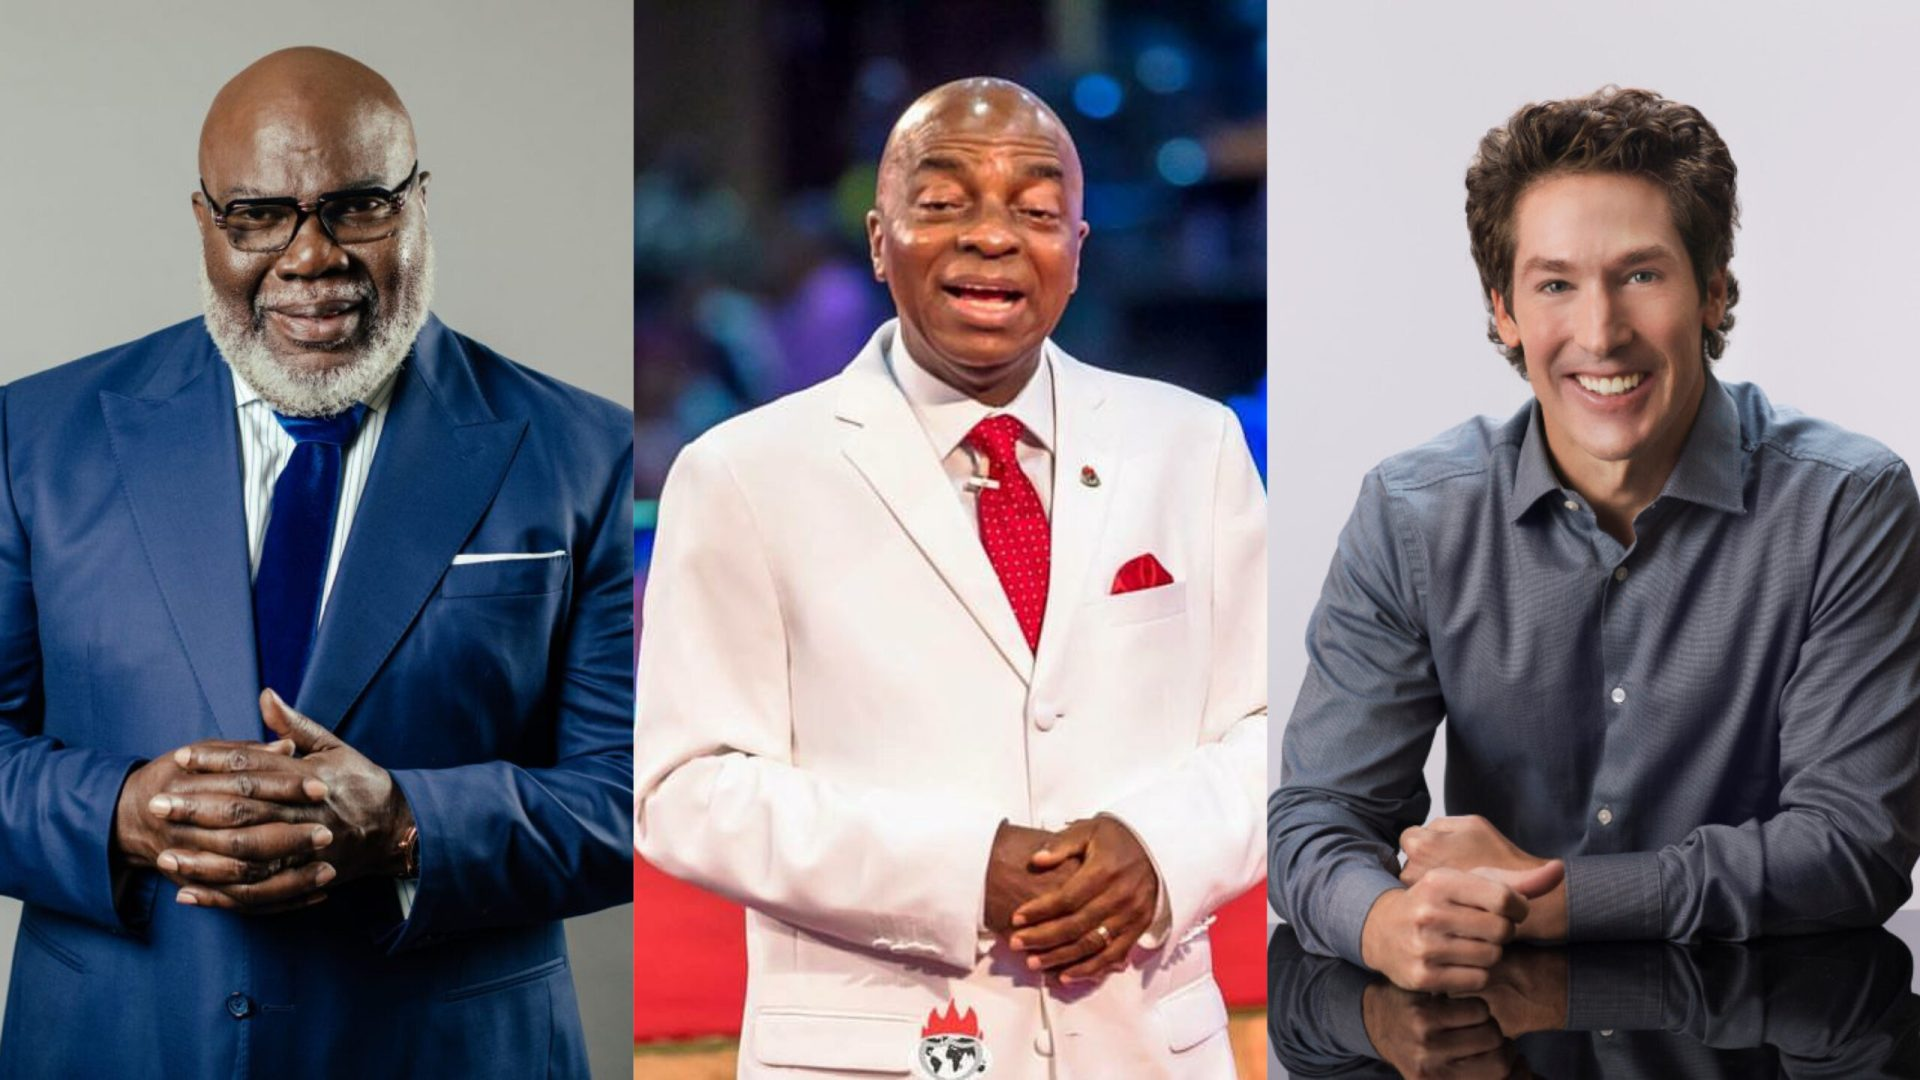 Top 10 Richest Pastors In The World 2021 & Their Net Worth